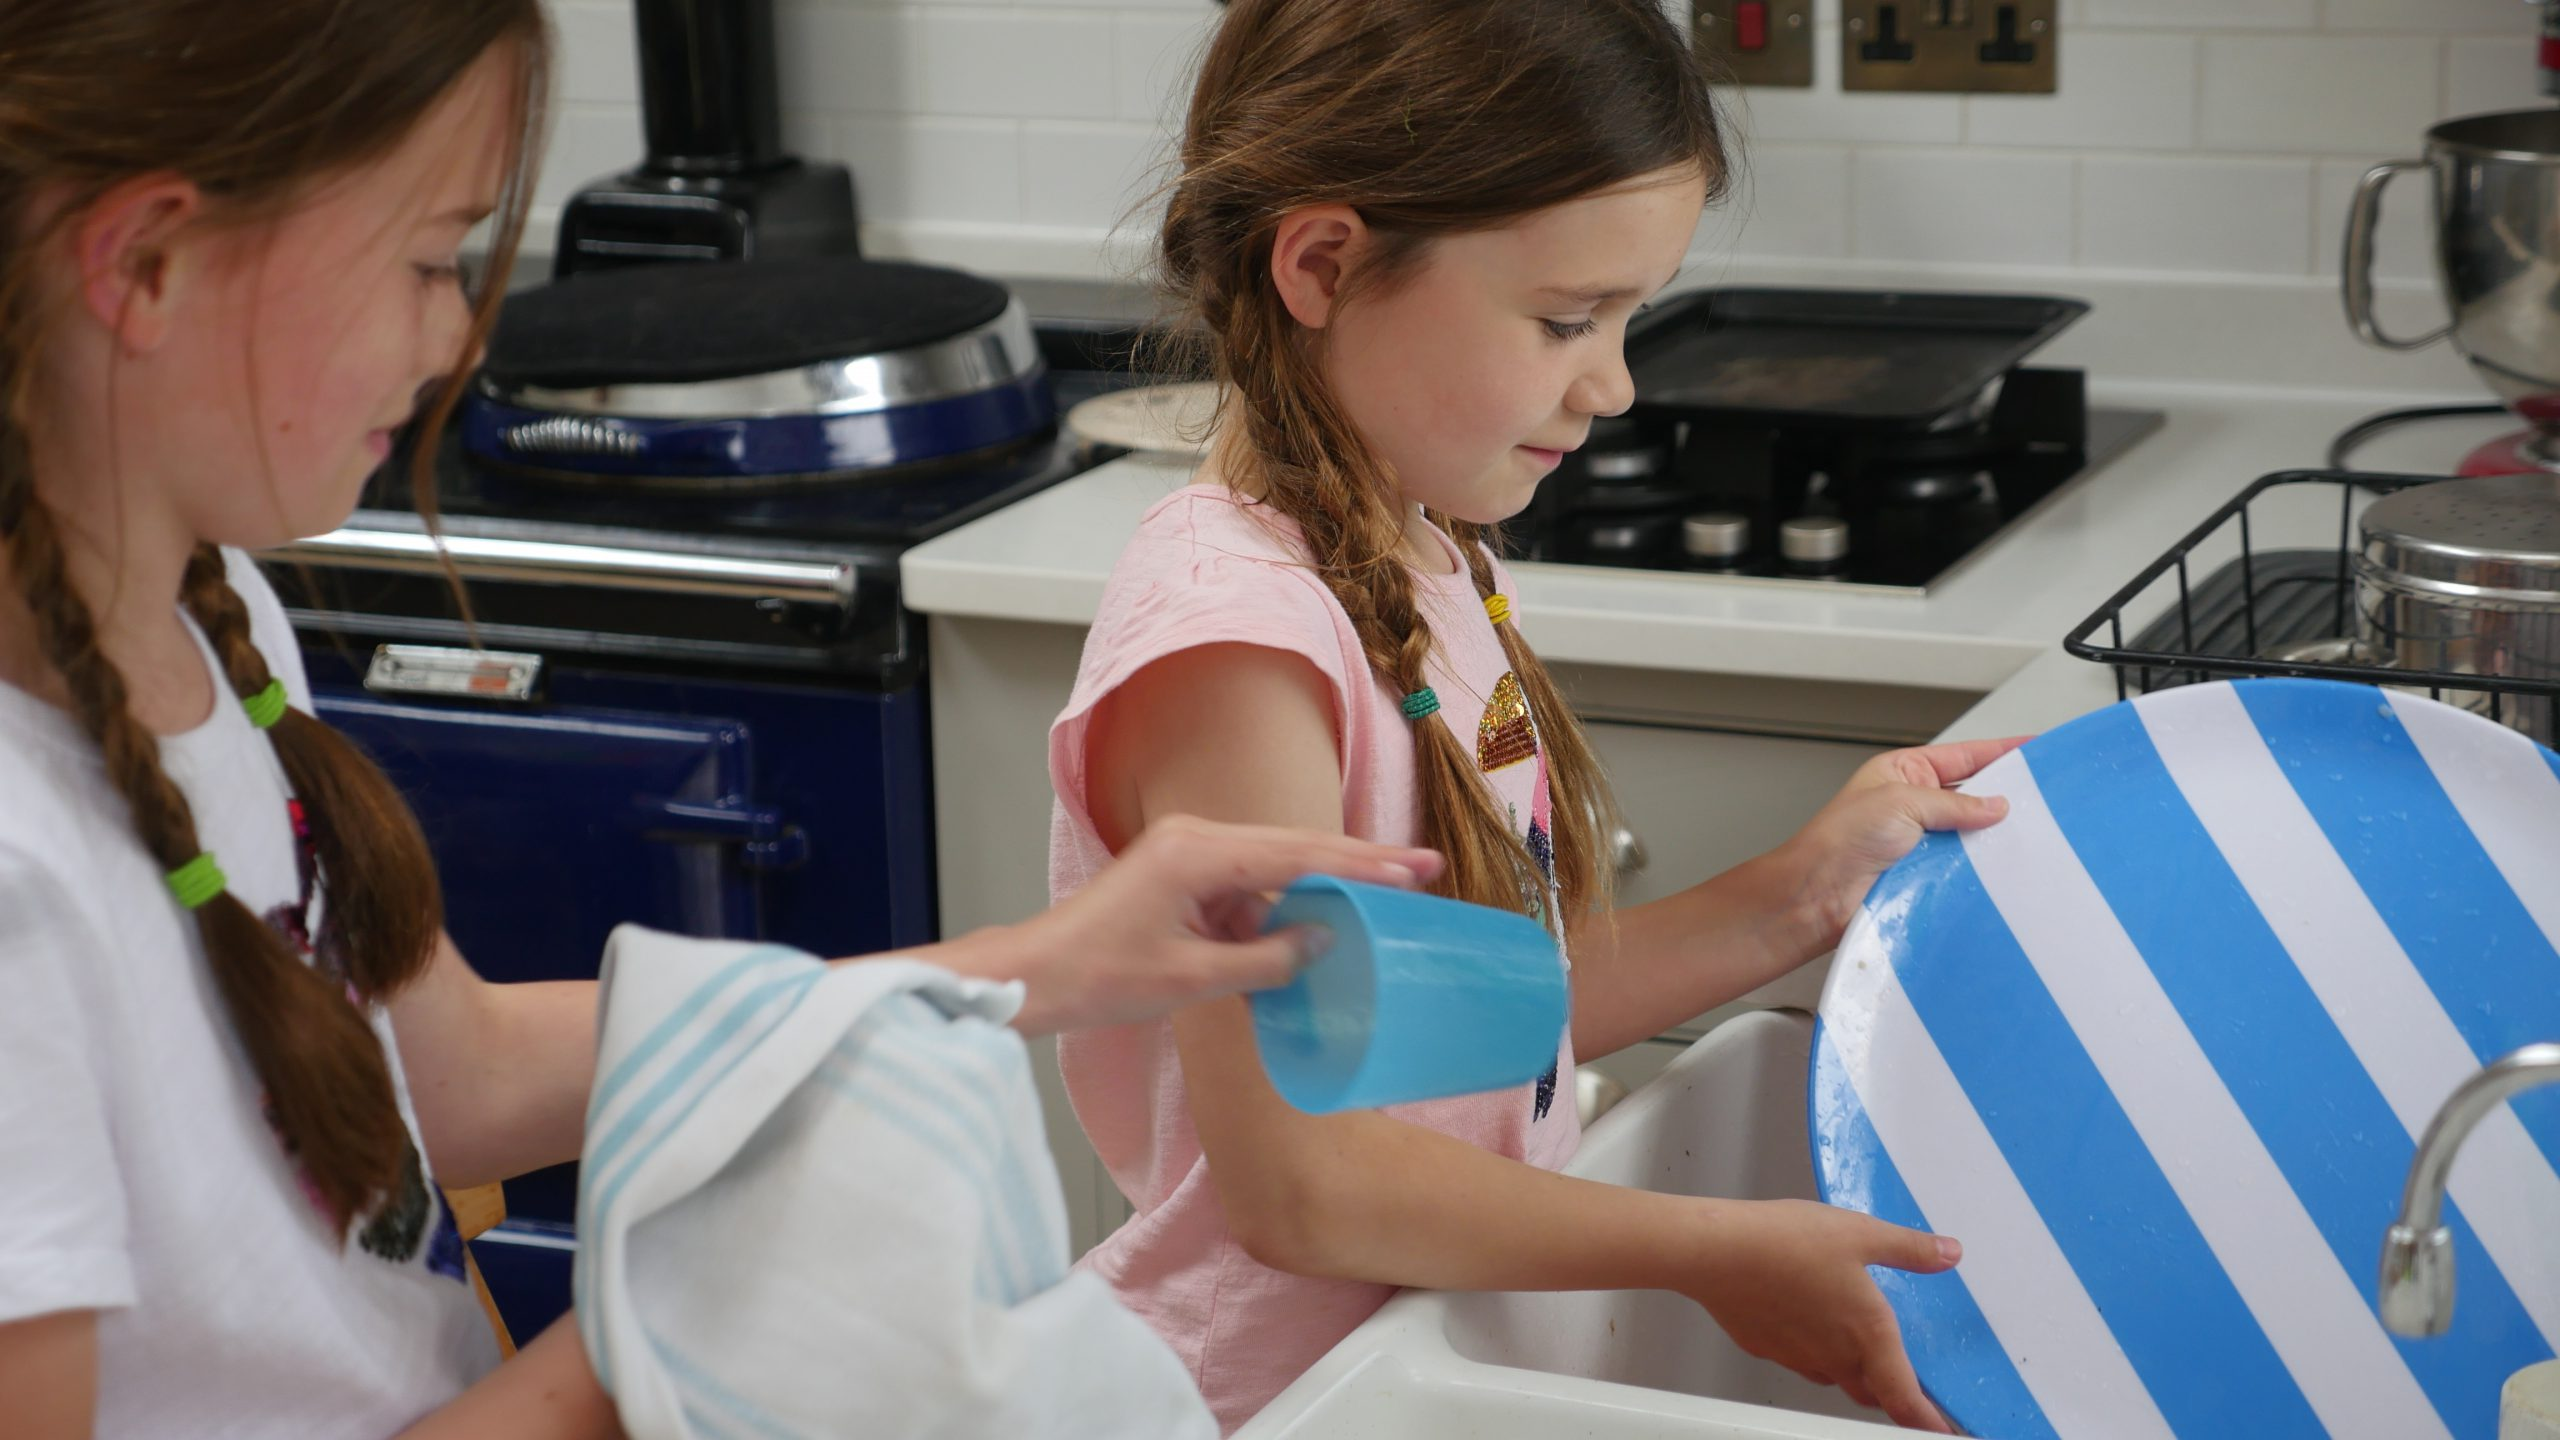 Family Chores - Washing the dishes